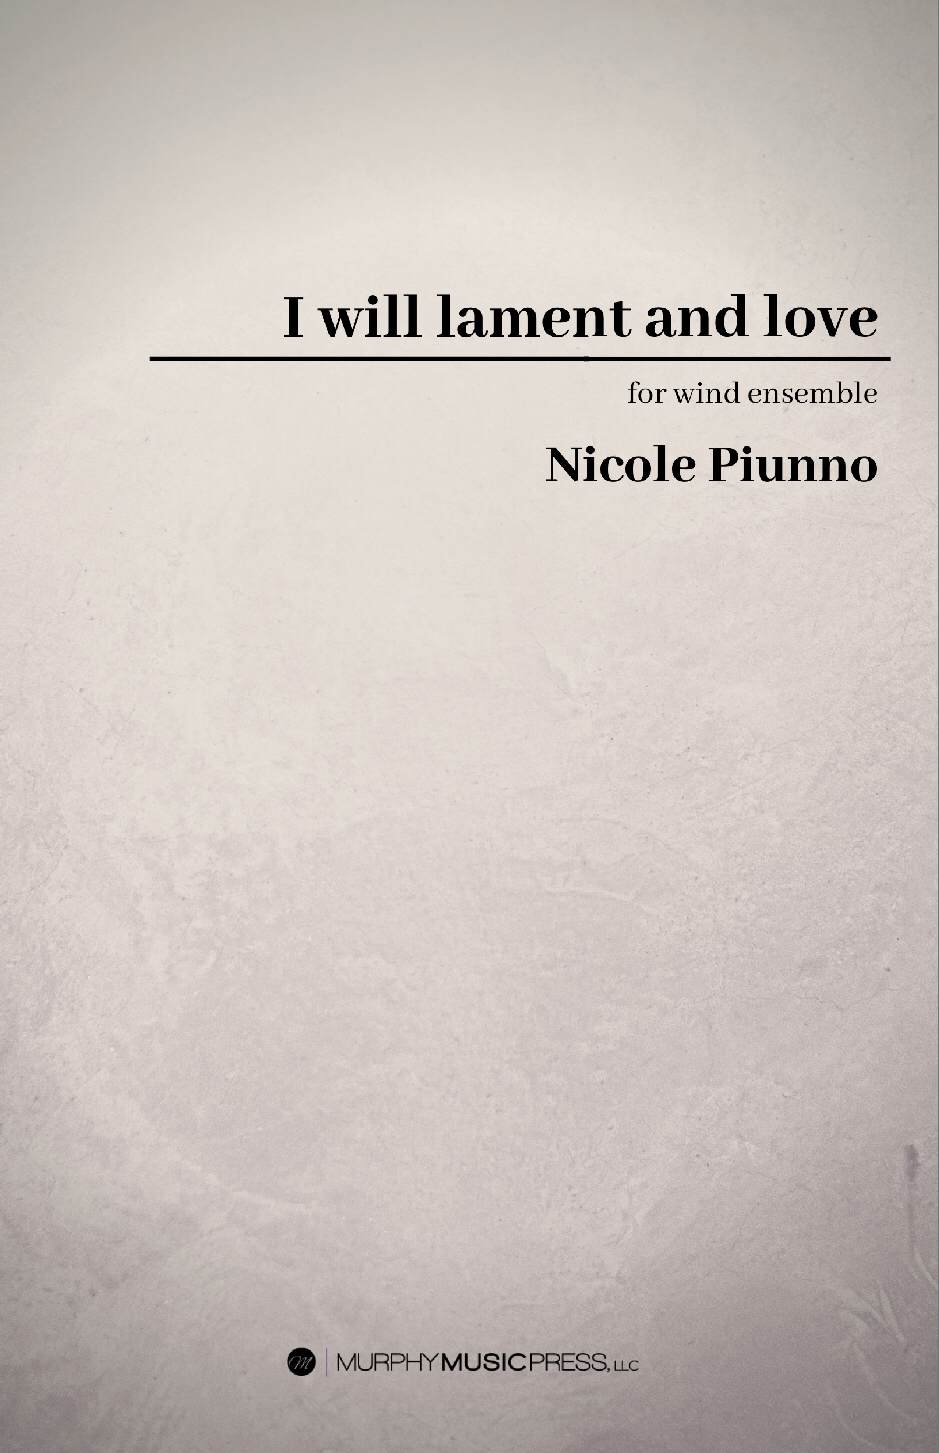 I Will Lament And Love by Nicole Piunno